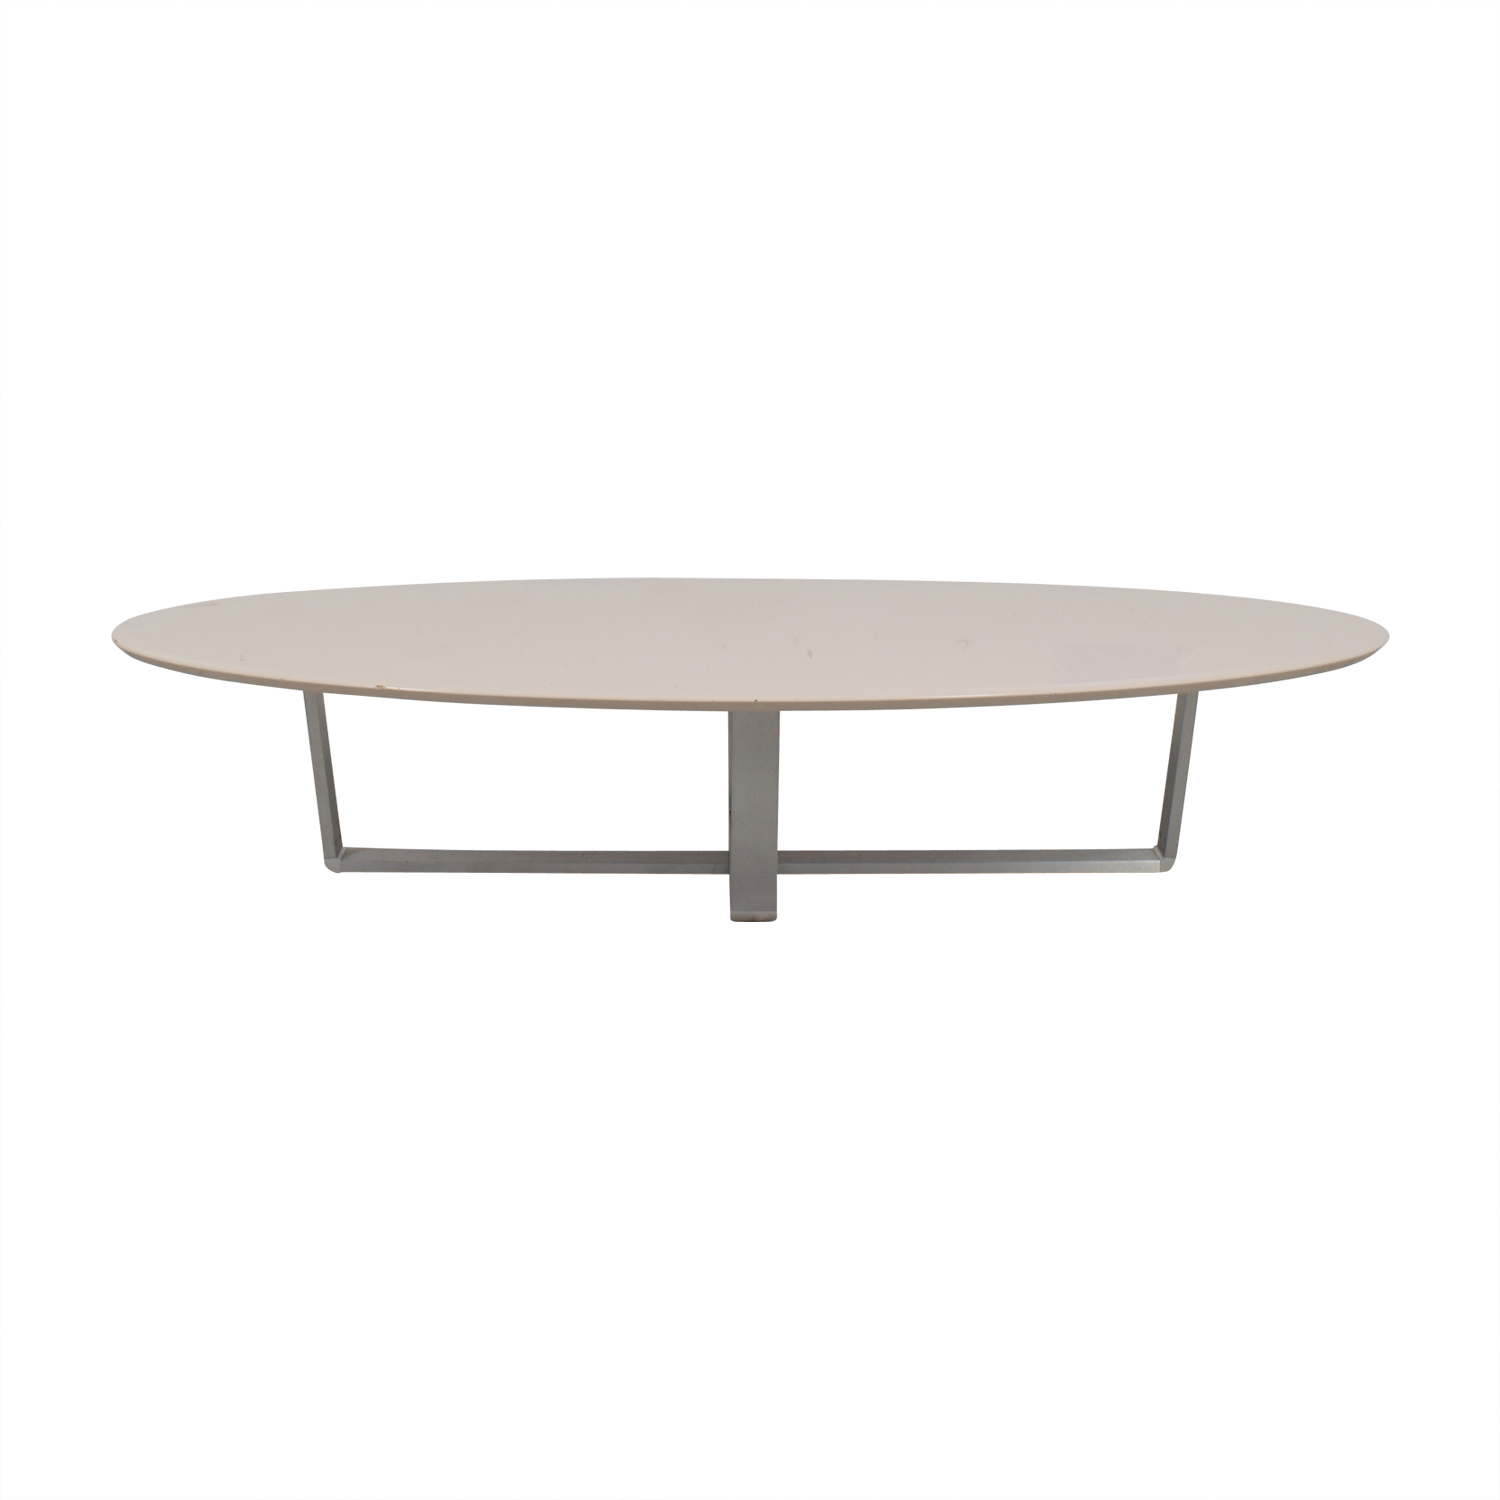 Argo Furniture Argo Furniture White Lacquer Oval Coffee Table dimensions